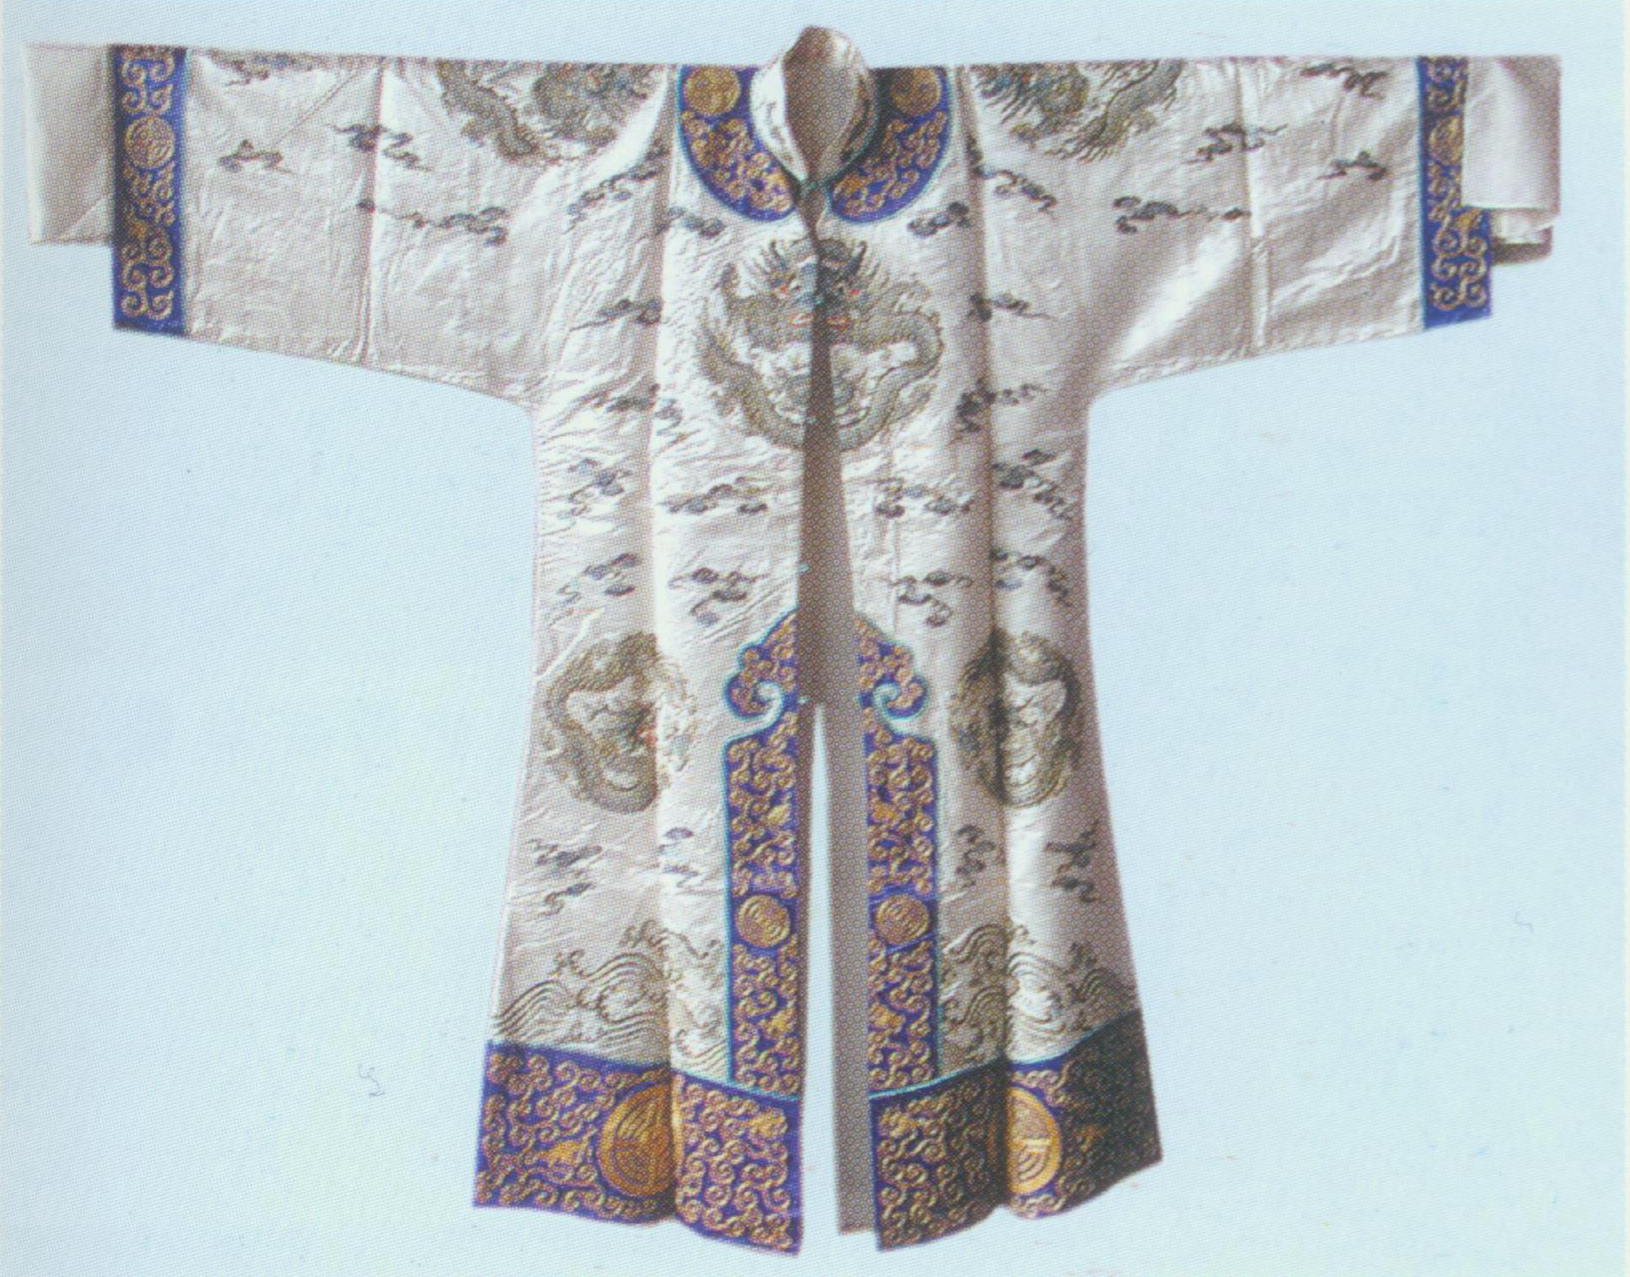 "Longtao yi   Theatrical costume worn by attendants (longtao). It has symmetrical opening with long collar band,top sleeves and water sleeves. And the fungus-shaped arabesque finishes the top of the center back slit, with undulant borders. Besides, the neckline, cuffs, edges of the opening in the front and back slit are all hemmed with colorful bands with motifs of acient coins, flowers, dragons and geometrical patterns. Several dragons are embroidered on the sleeves, front and back piece along with clouds and sea waves. Longtao usually come in groups of four as the guards. They process on stage carrying banners at the battle scene to present a strong army. the color is selected to match or harmonize with the principle roles they serve. The Red robe is called ""hong longtao"", white called ""bai longtao""."